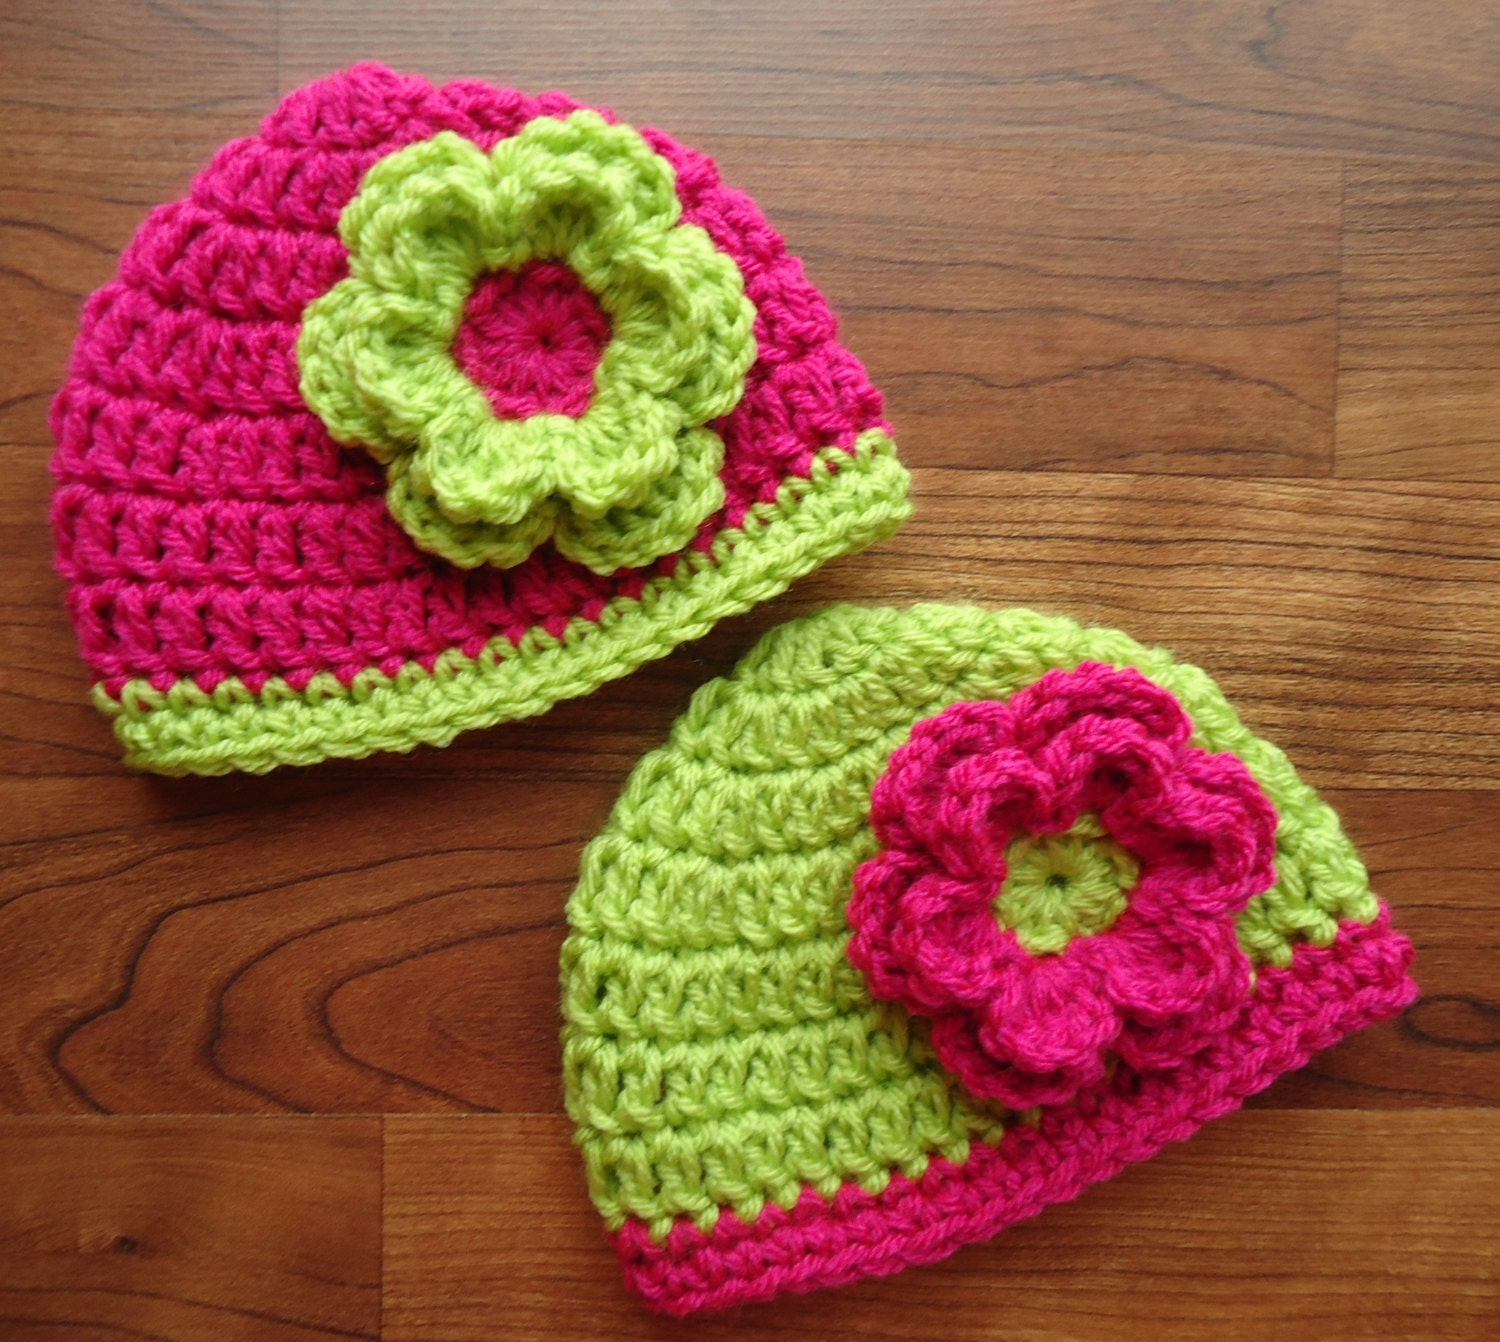 Crochet Hat Patterns For Twin Babies : Crocheted Baby Twin Girls Hat Set with Flower by ...